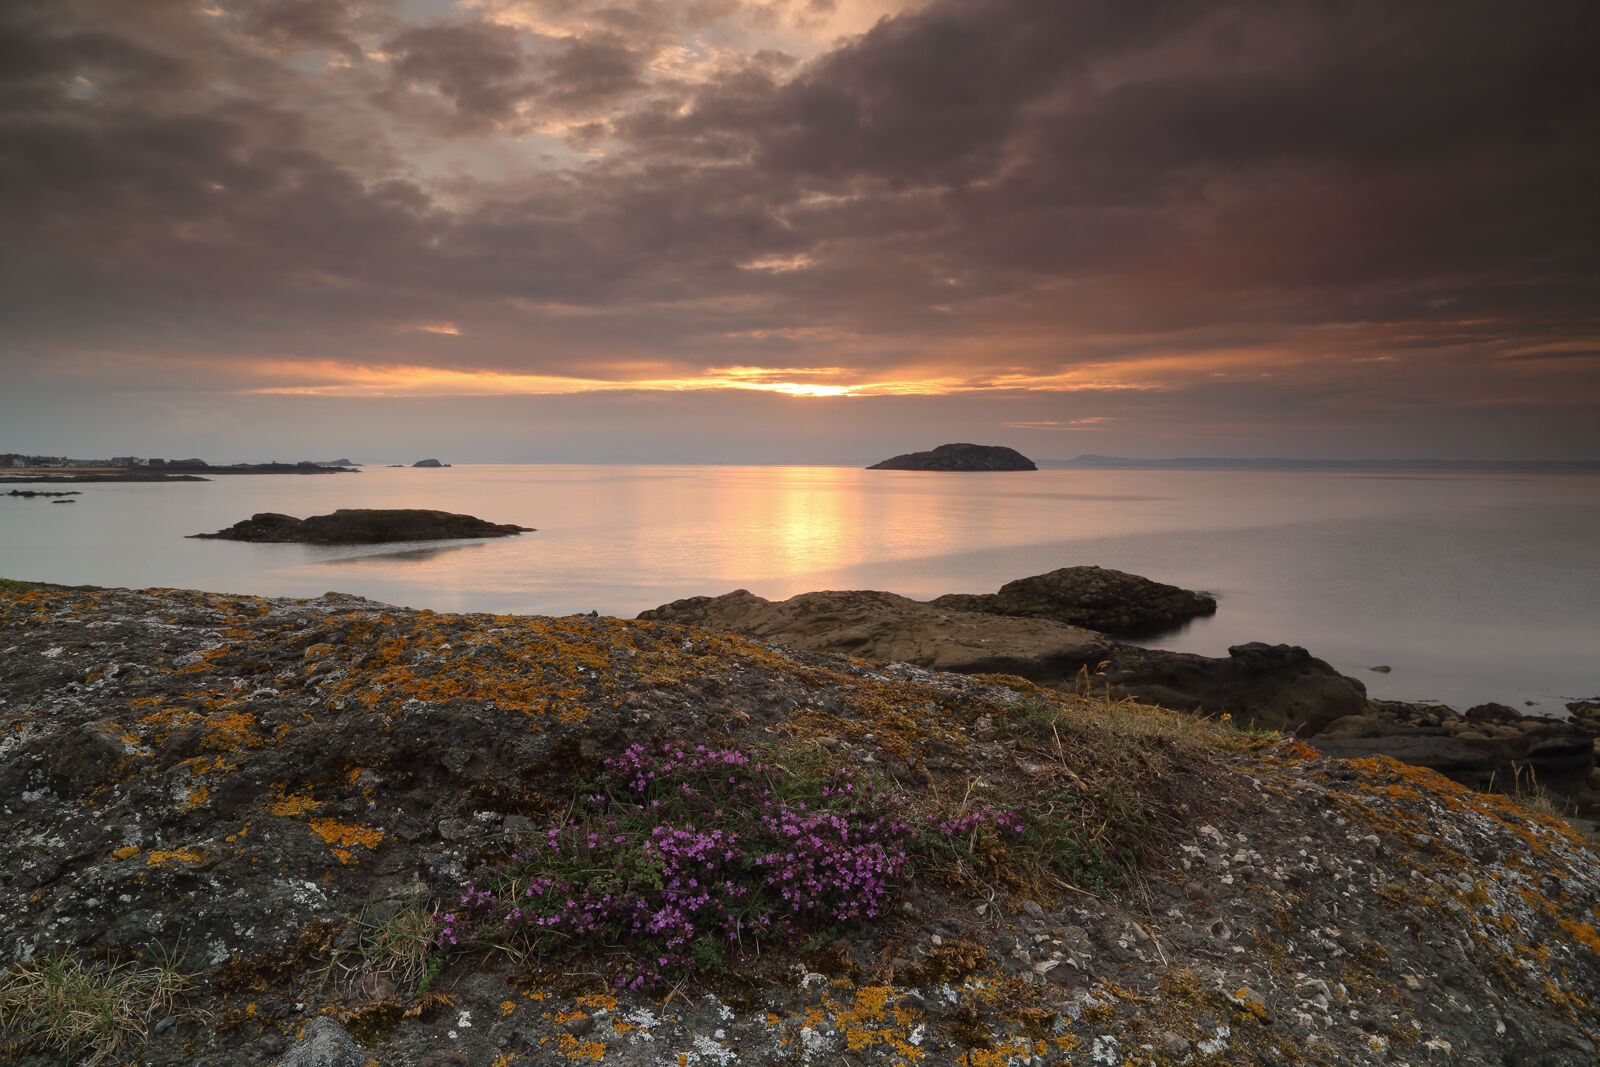 August 2021 - Sunset, Firth of Forth